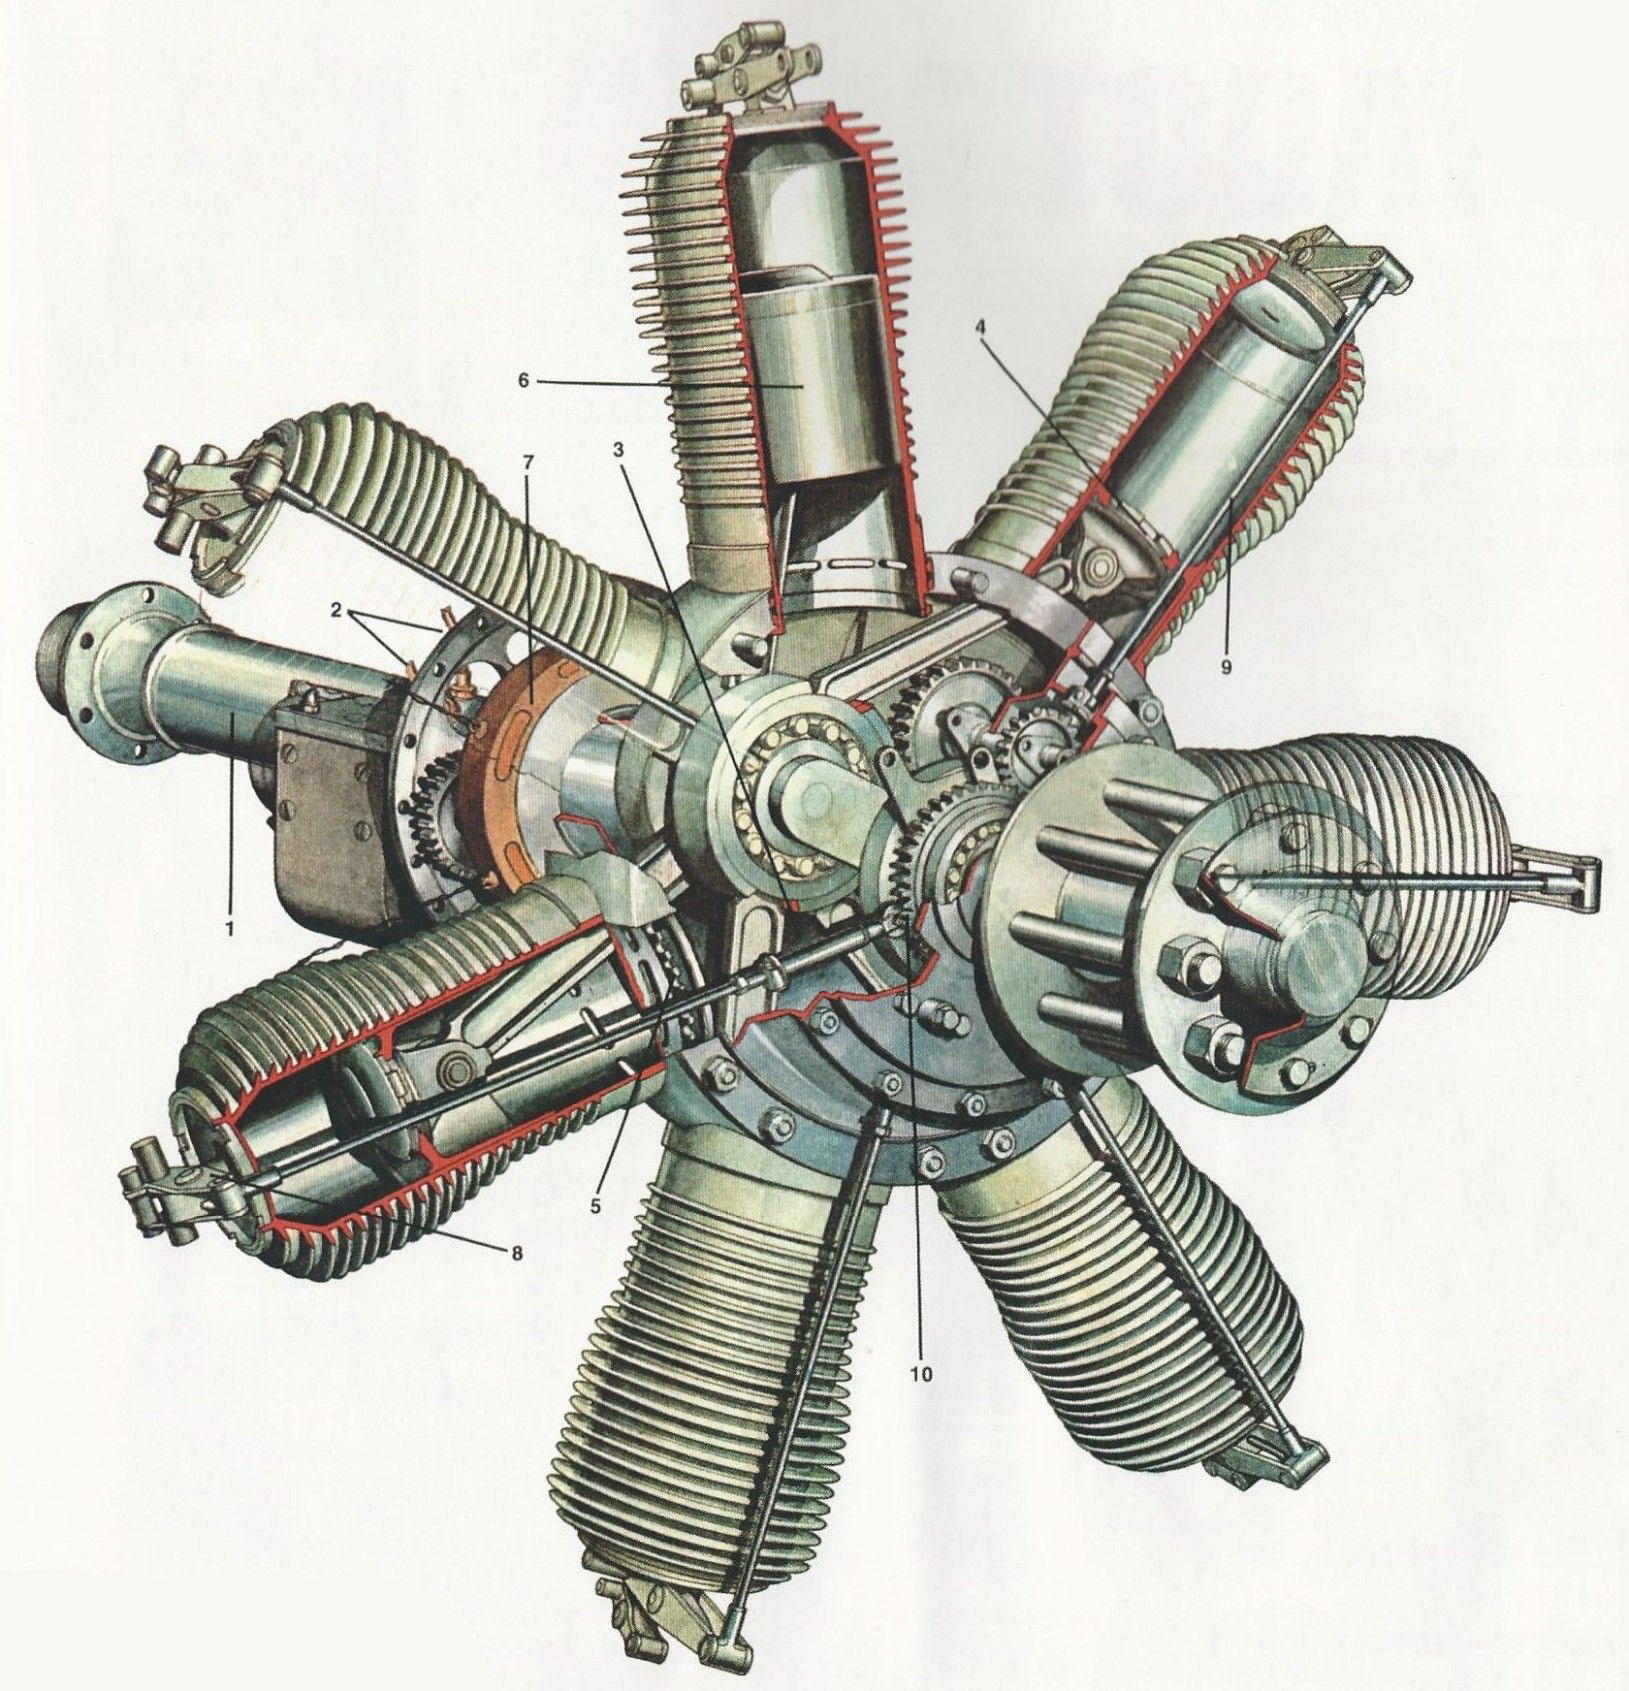 Rotary Airplane Engine cutaway drawing